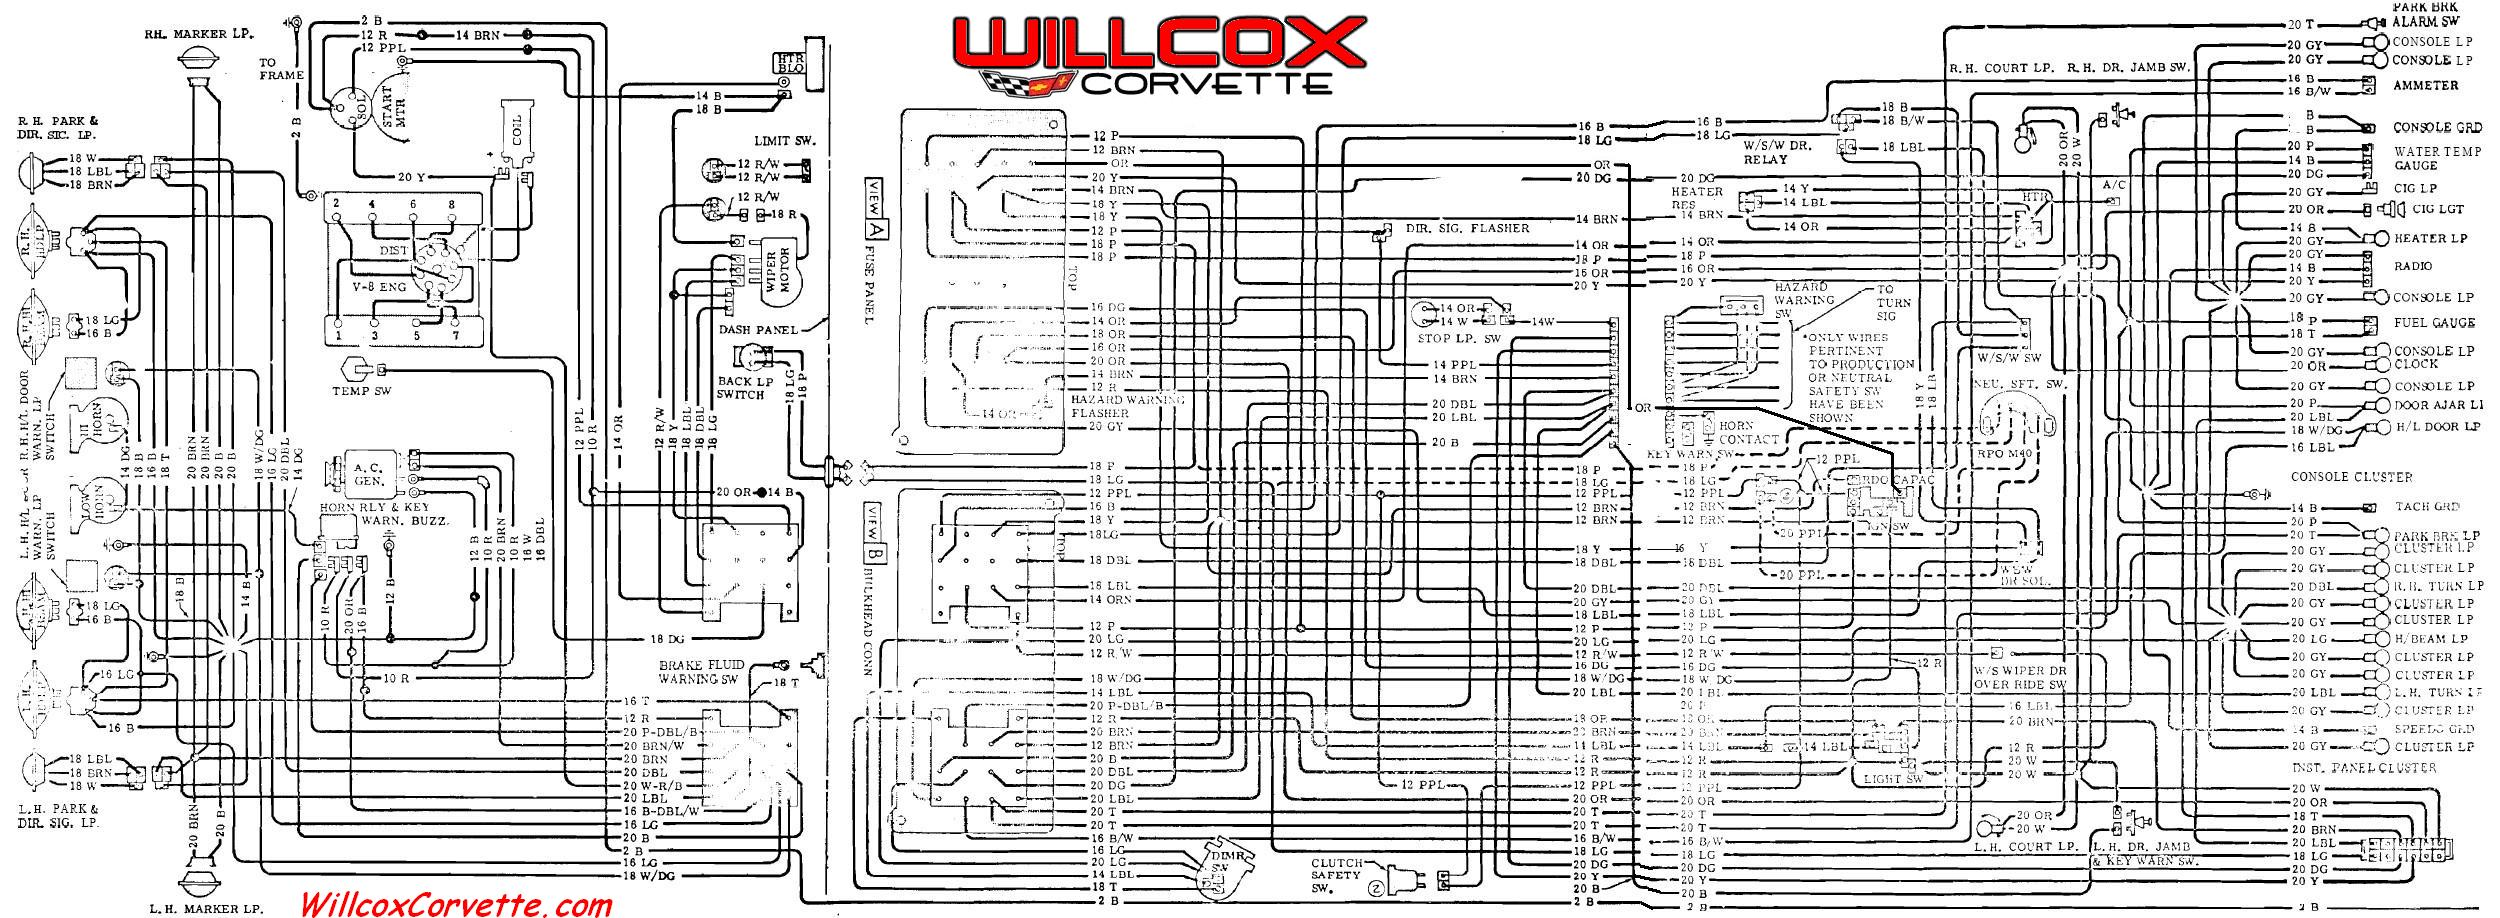 1997 Corvette Wiring Diagram Another Blog About Engine 1969 Main And Compartment